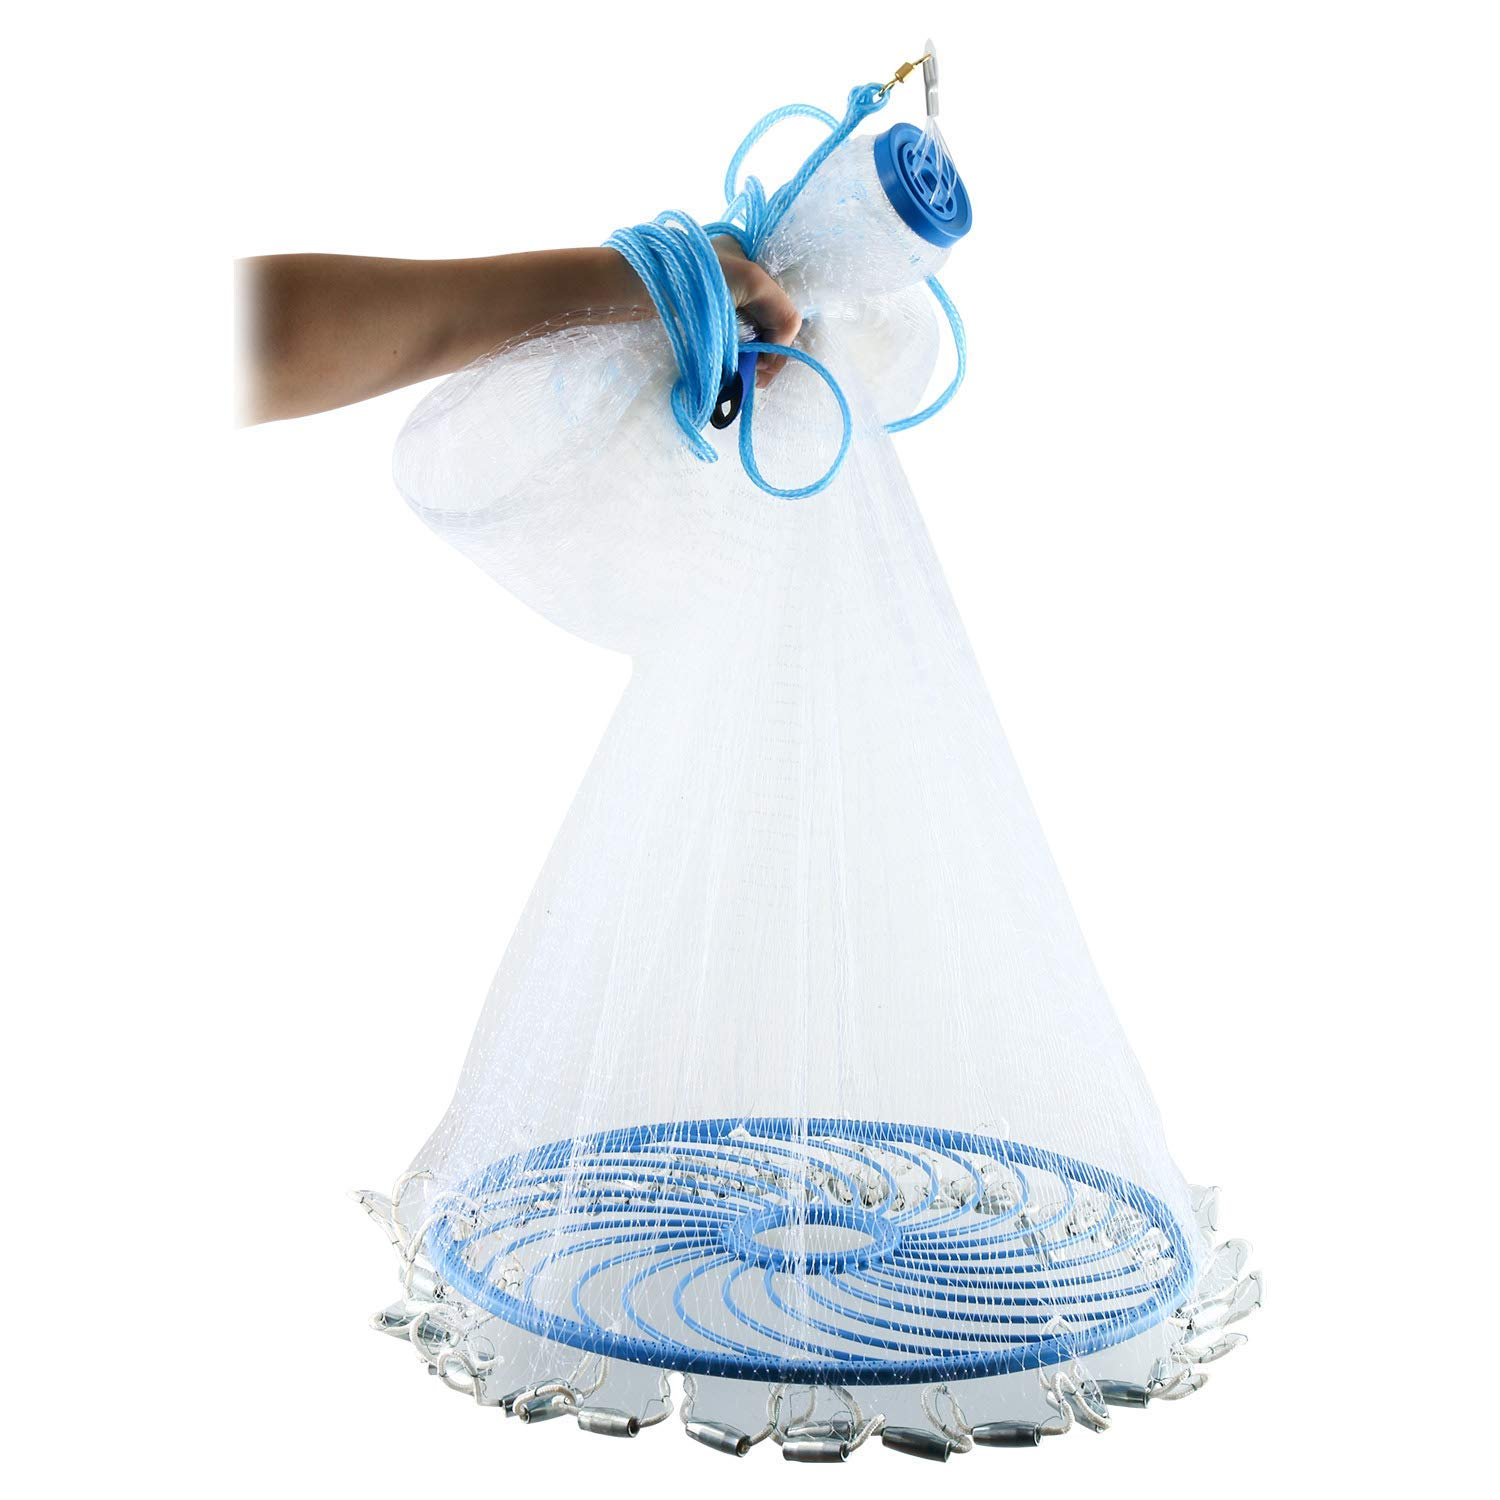 Vnhome Magic Fishing Cast Net for Perfect Circle Throwing (8ft, 10ft, 12ft) (10ft, Magic Fishing Net) by Vnhome